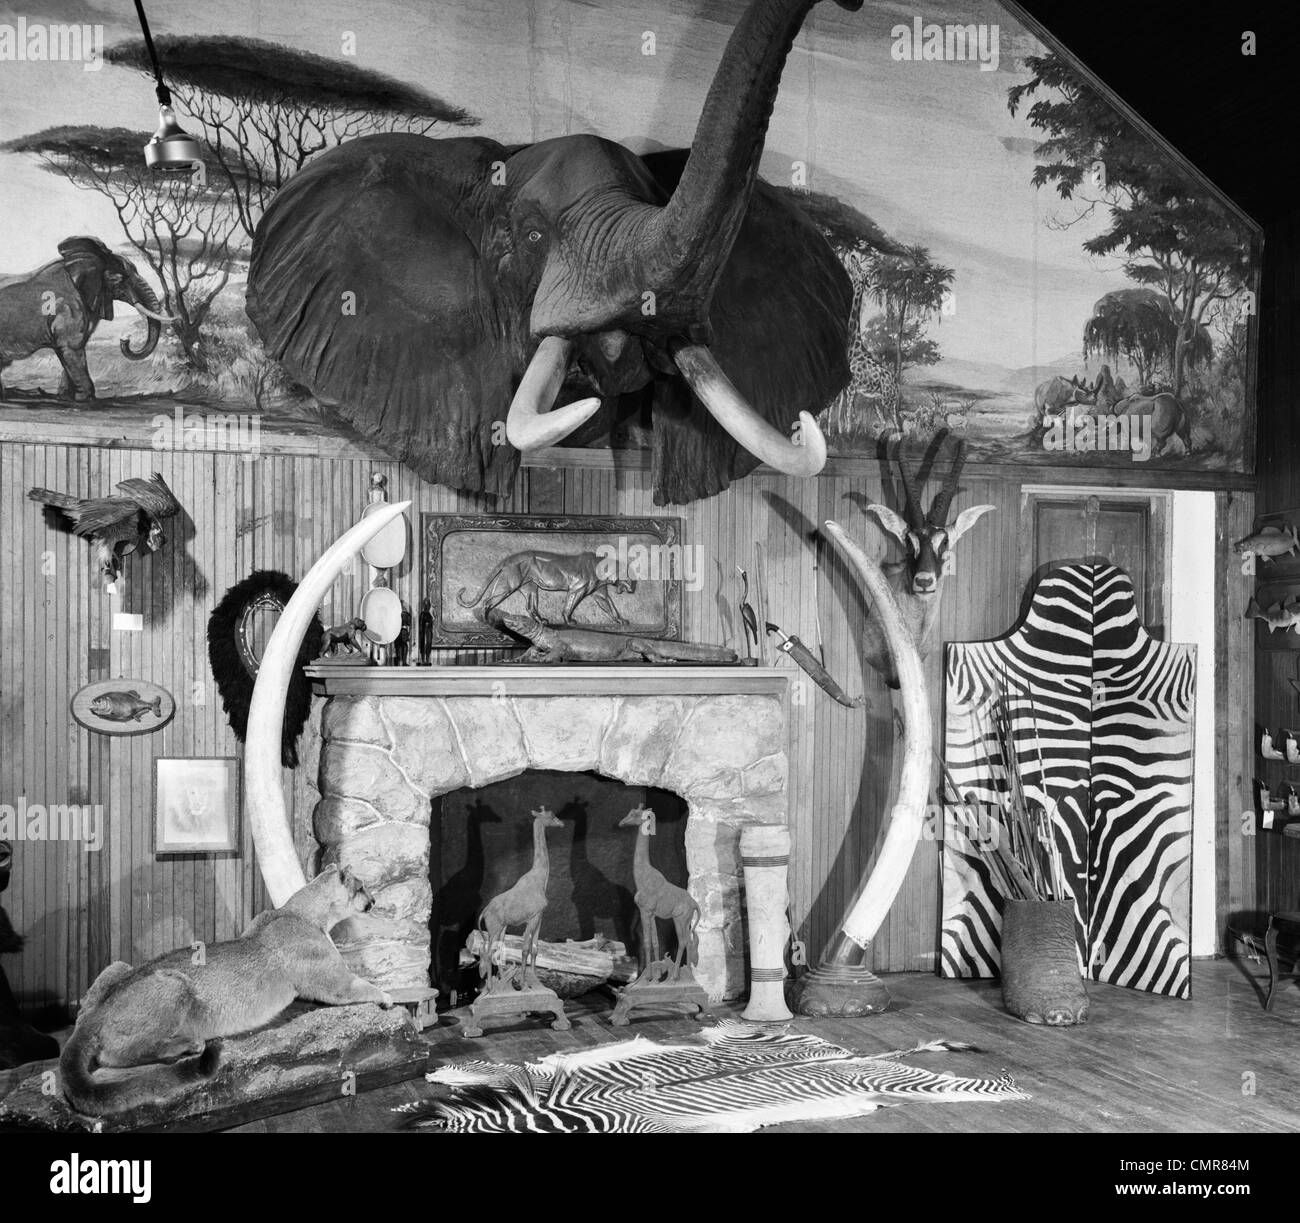 1940s 1950s ROOM WITH BIG GAME TROPHIES MOUNTED AROUND A FIREPLACE - Stock Image